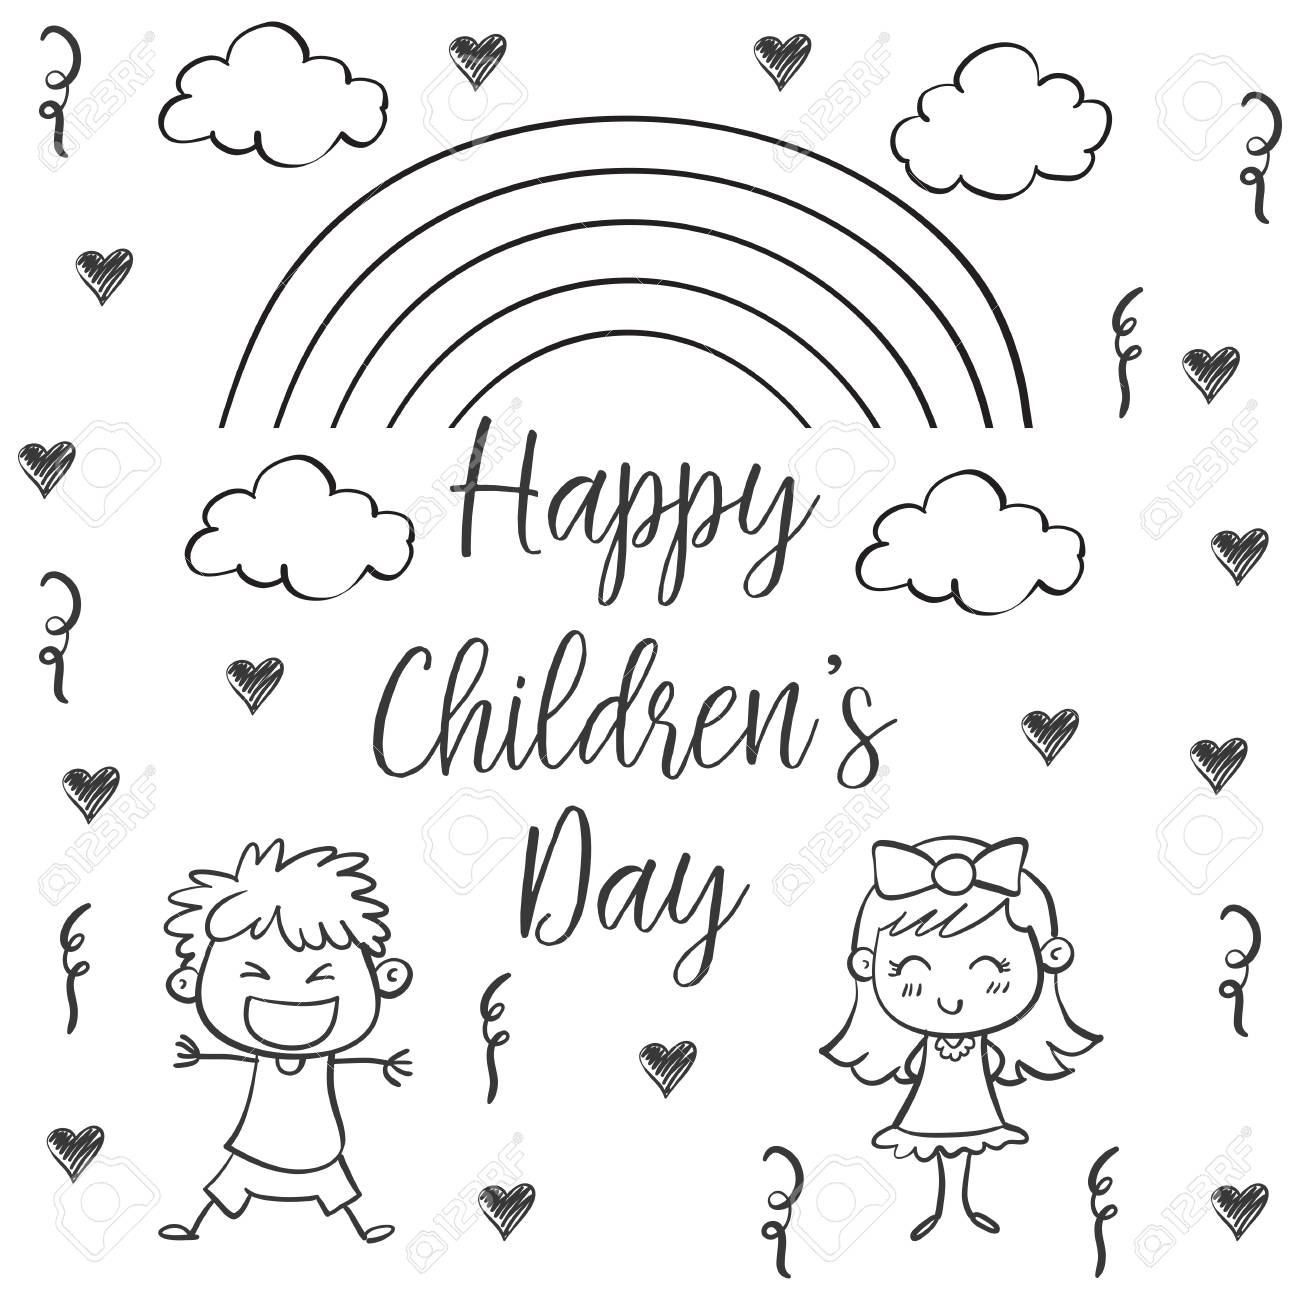 Happy Children's Day Poster With Kids In Sky Illustration. Royalty Free  Cliparts, Vectors, And Stock Illustration. Image 87919361.